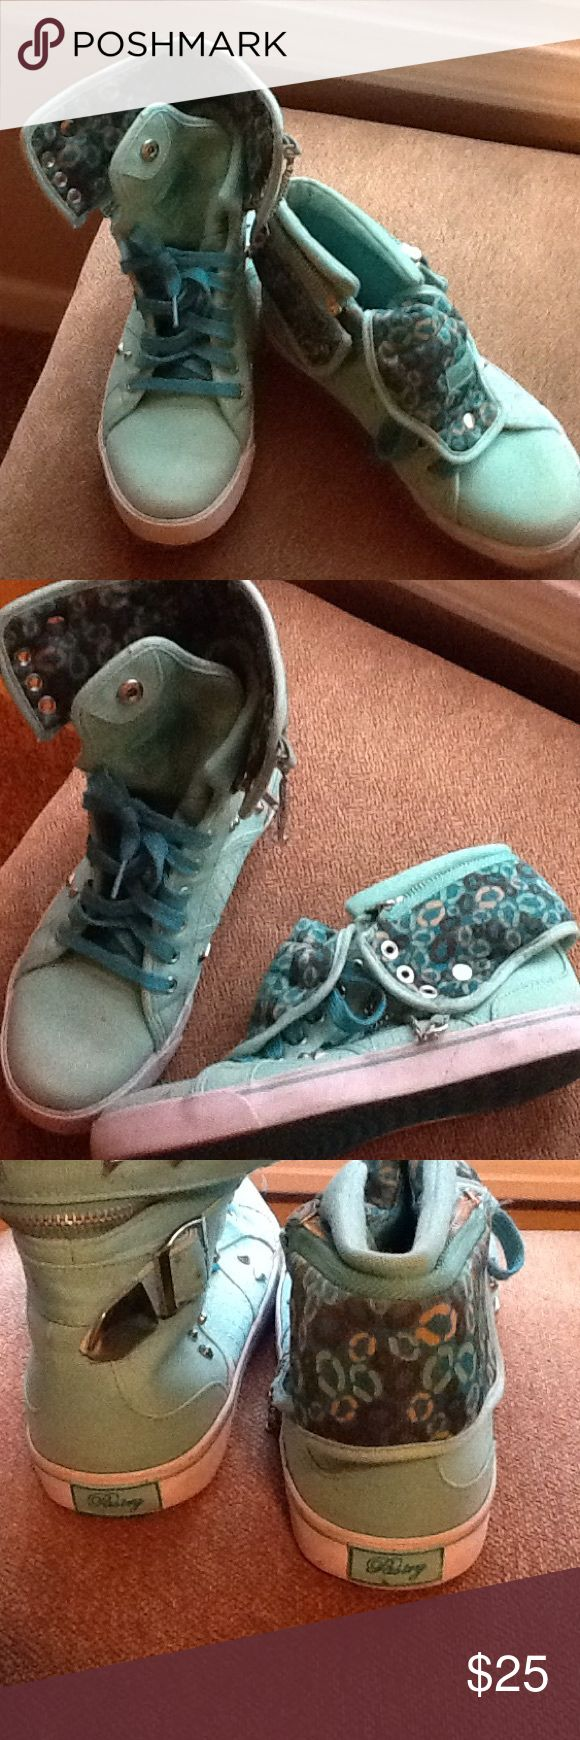 Mint pastry sneakers. Too cold Wear many ways even the high top zips off.  Mint. Pastries. Don't miss out Pastry Shoes Athletic Shoes